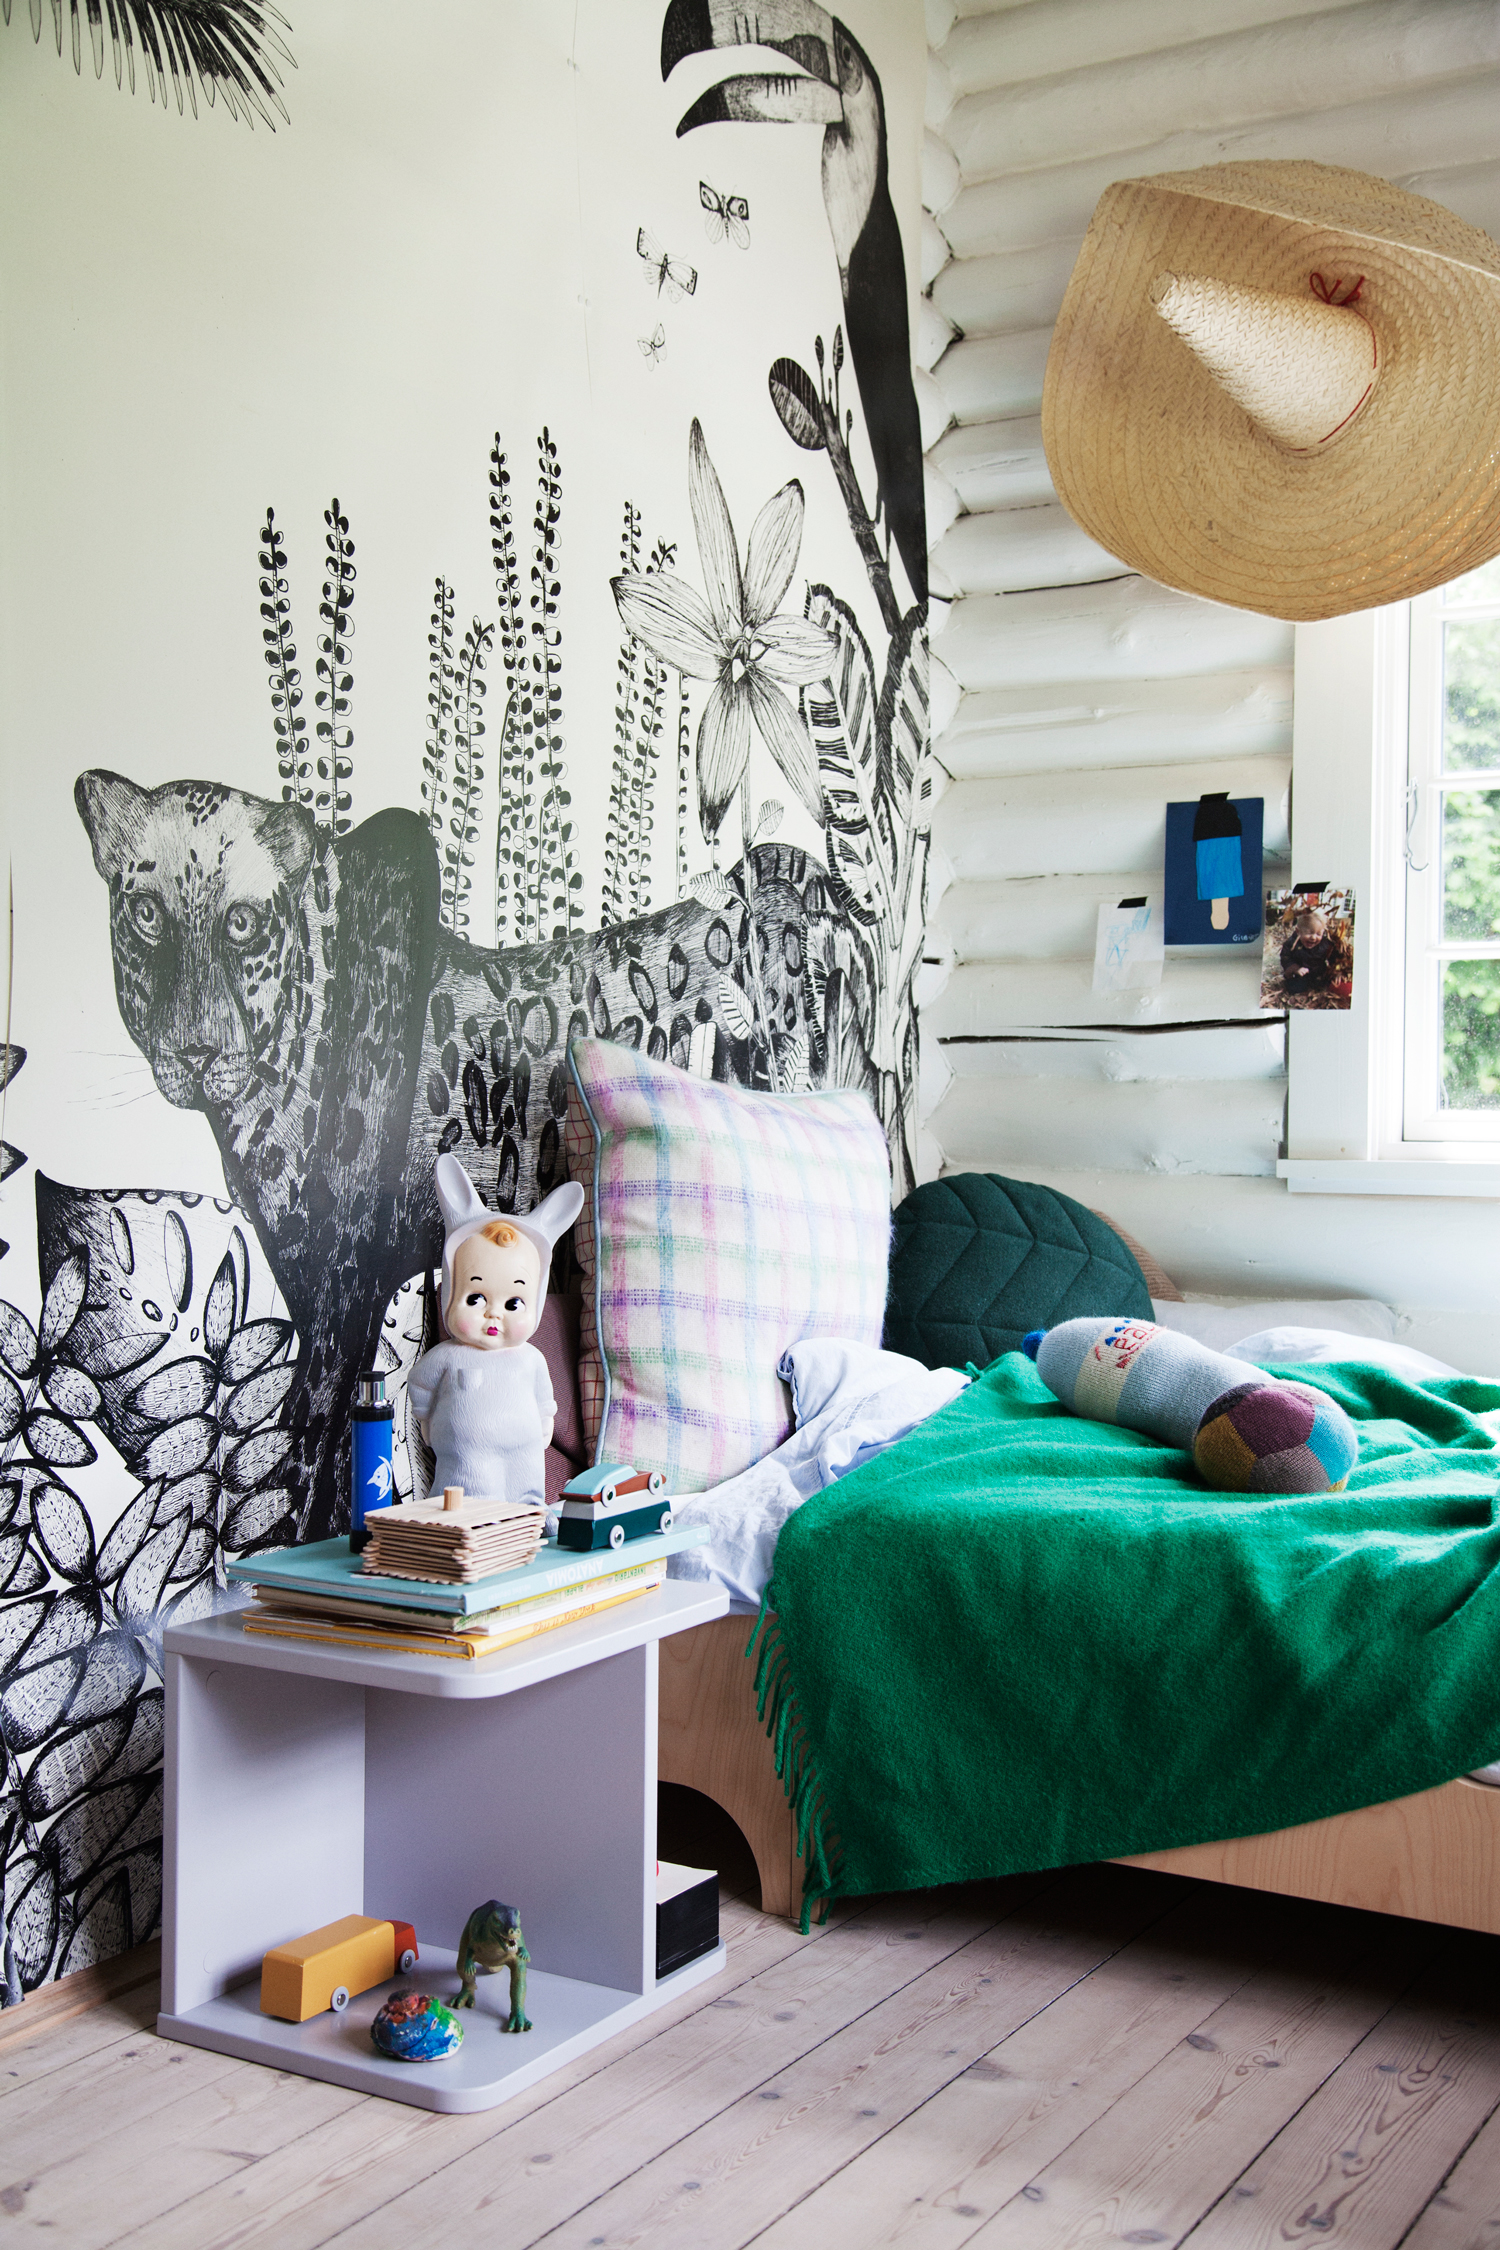 'The Wild'  wallpaper makes for a great background for the  A Teen Bed  in Gilbert's room. Next to the bed is the  3-in-1 Chair  used as a table. On the table: A  Baby Lapin Nightlight  and  Duotone Cars , while a  Water Bottle pillow  lies on the bed.